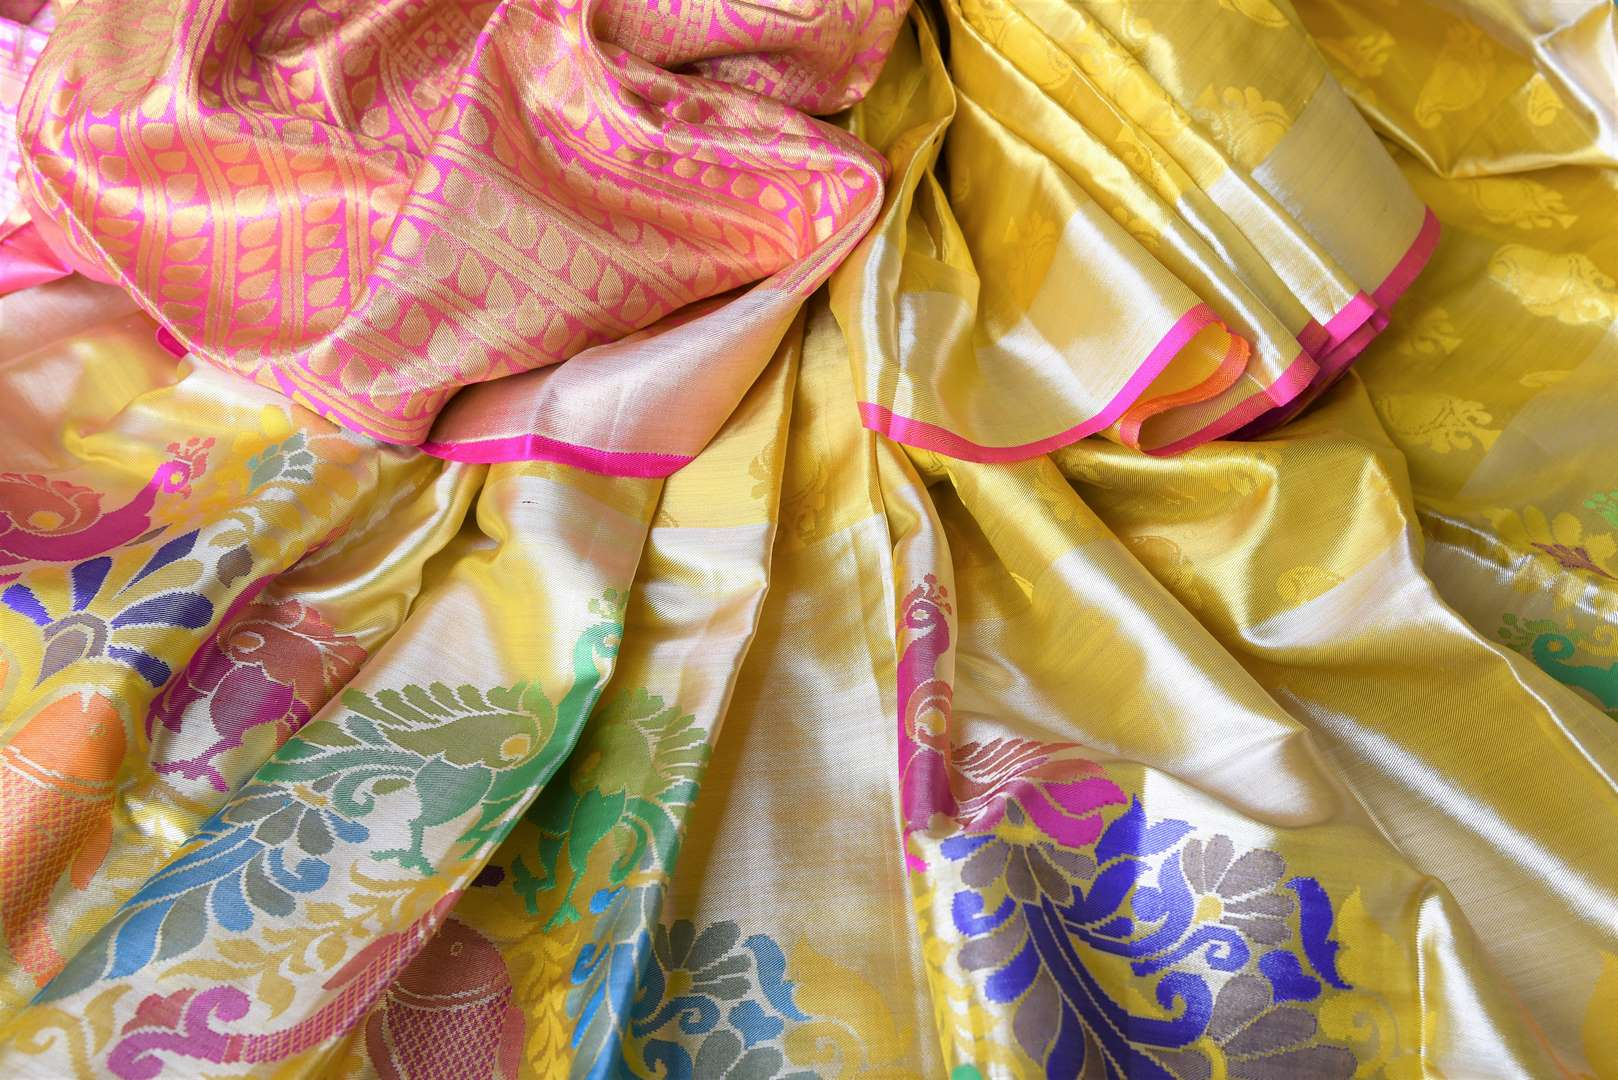 Grace the royal weddings in this exquisitely designed Yellow Kanjeevaram silk saree. It comes with handwoven peacock details on the border, a rich zari silk heavy pallu and a contrasting blouse. Shop beautiful designer saris, banarsi silk sarees online or visit Pure Elegance store in USA. -details